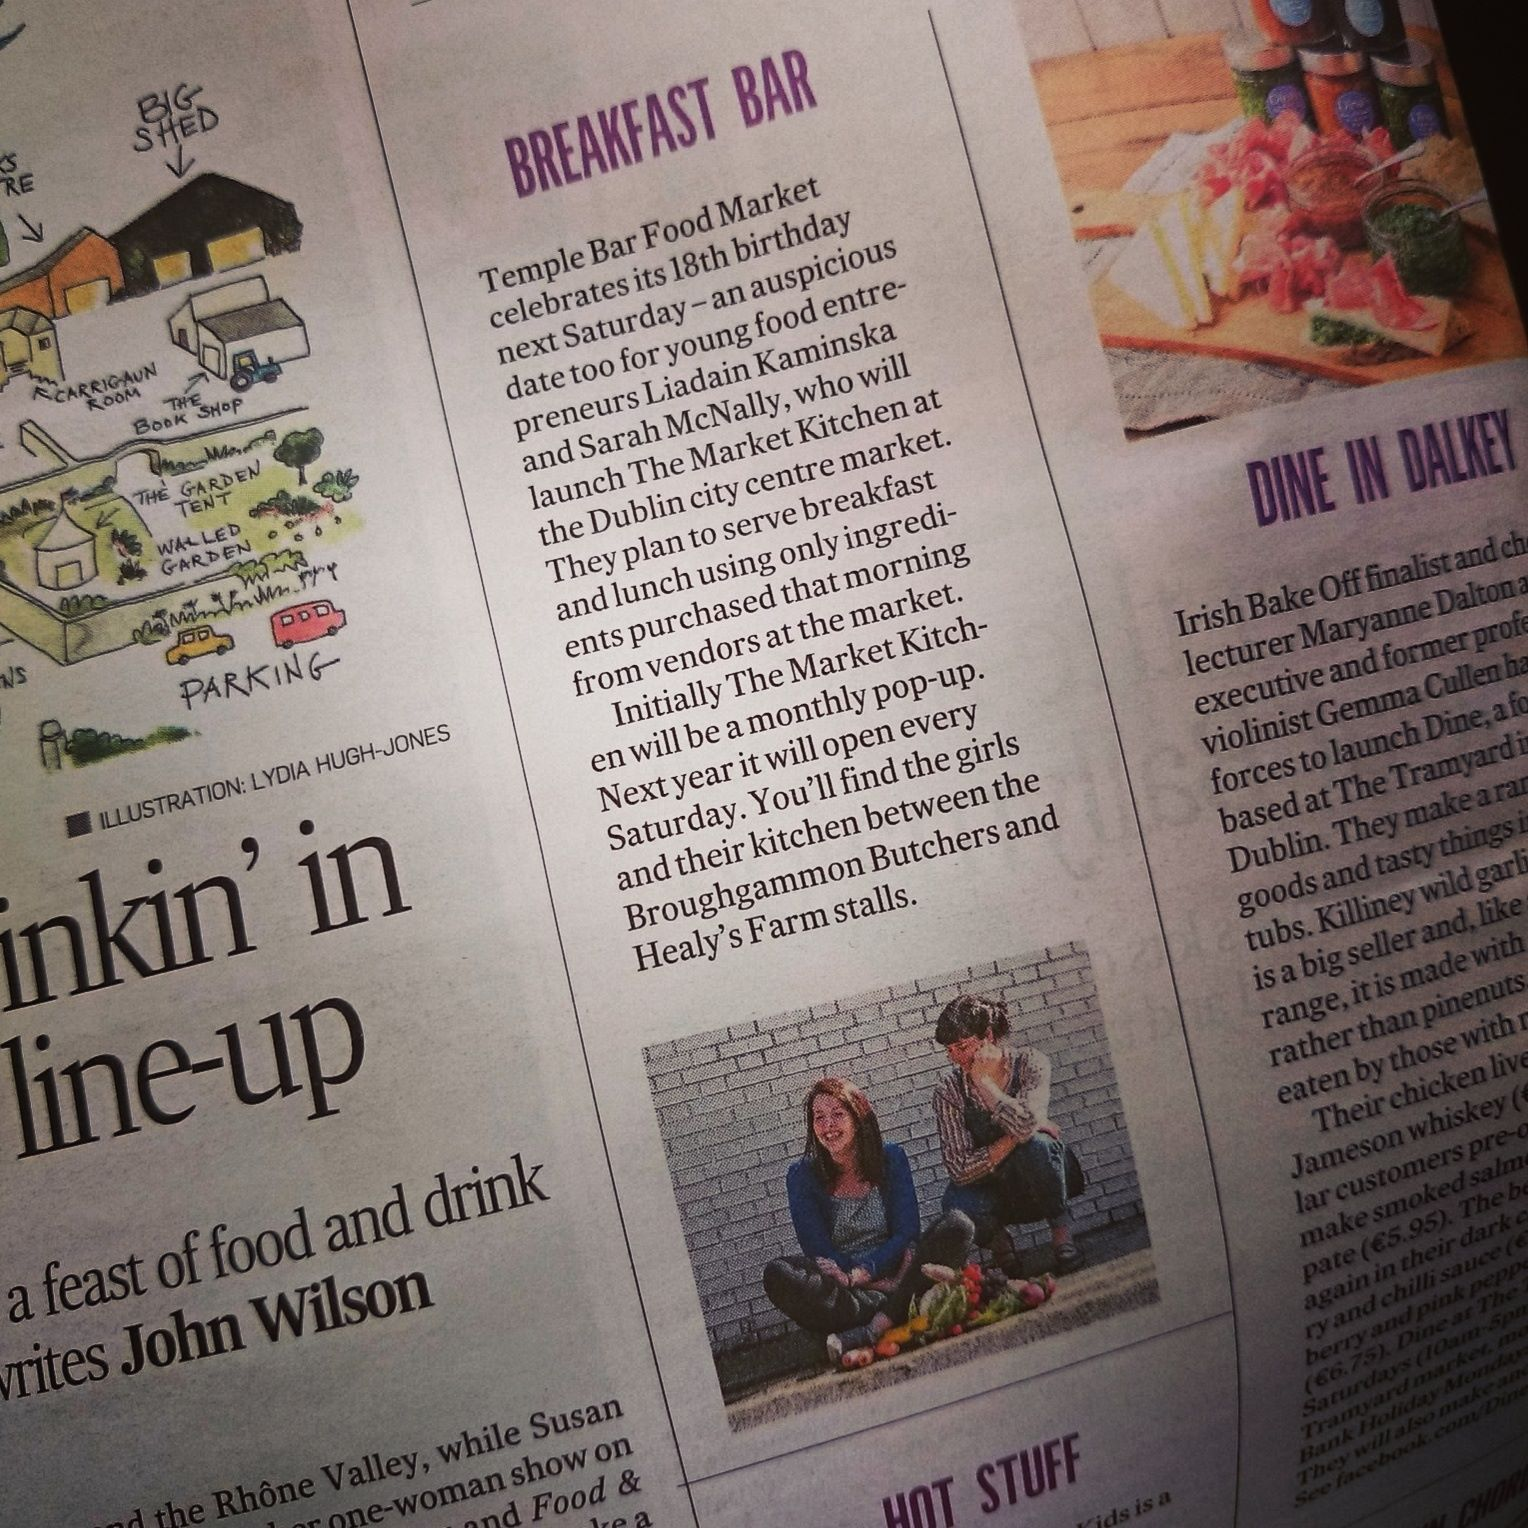 The Irish Times - Breakfast Bar .    Published 9 May 2015.